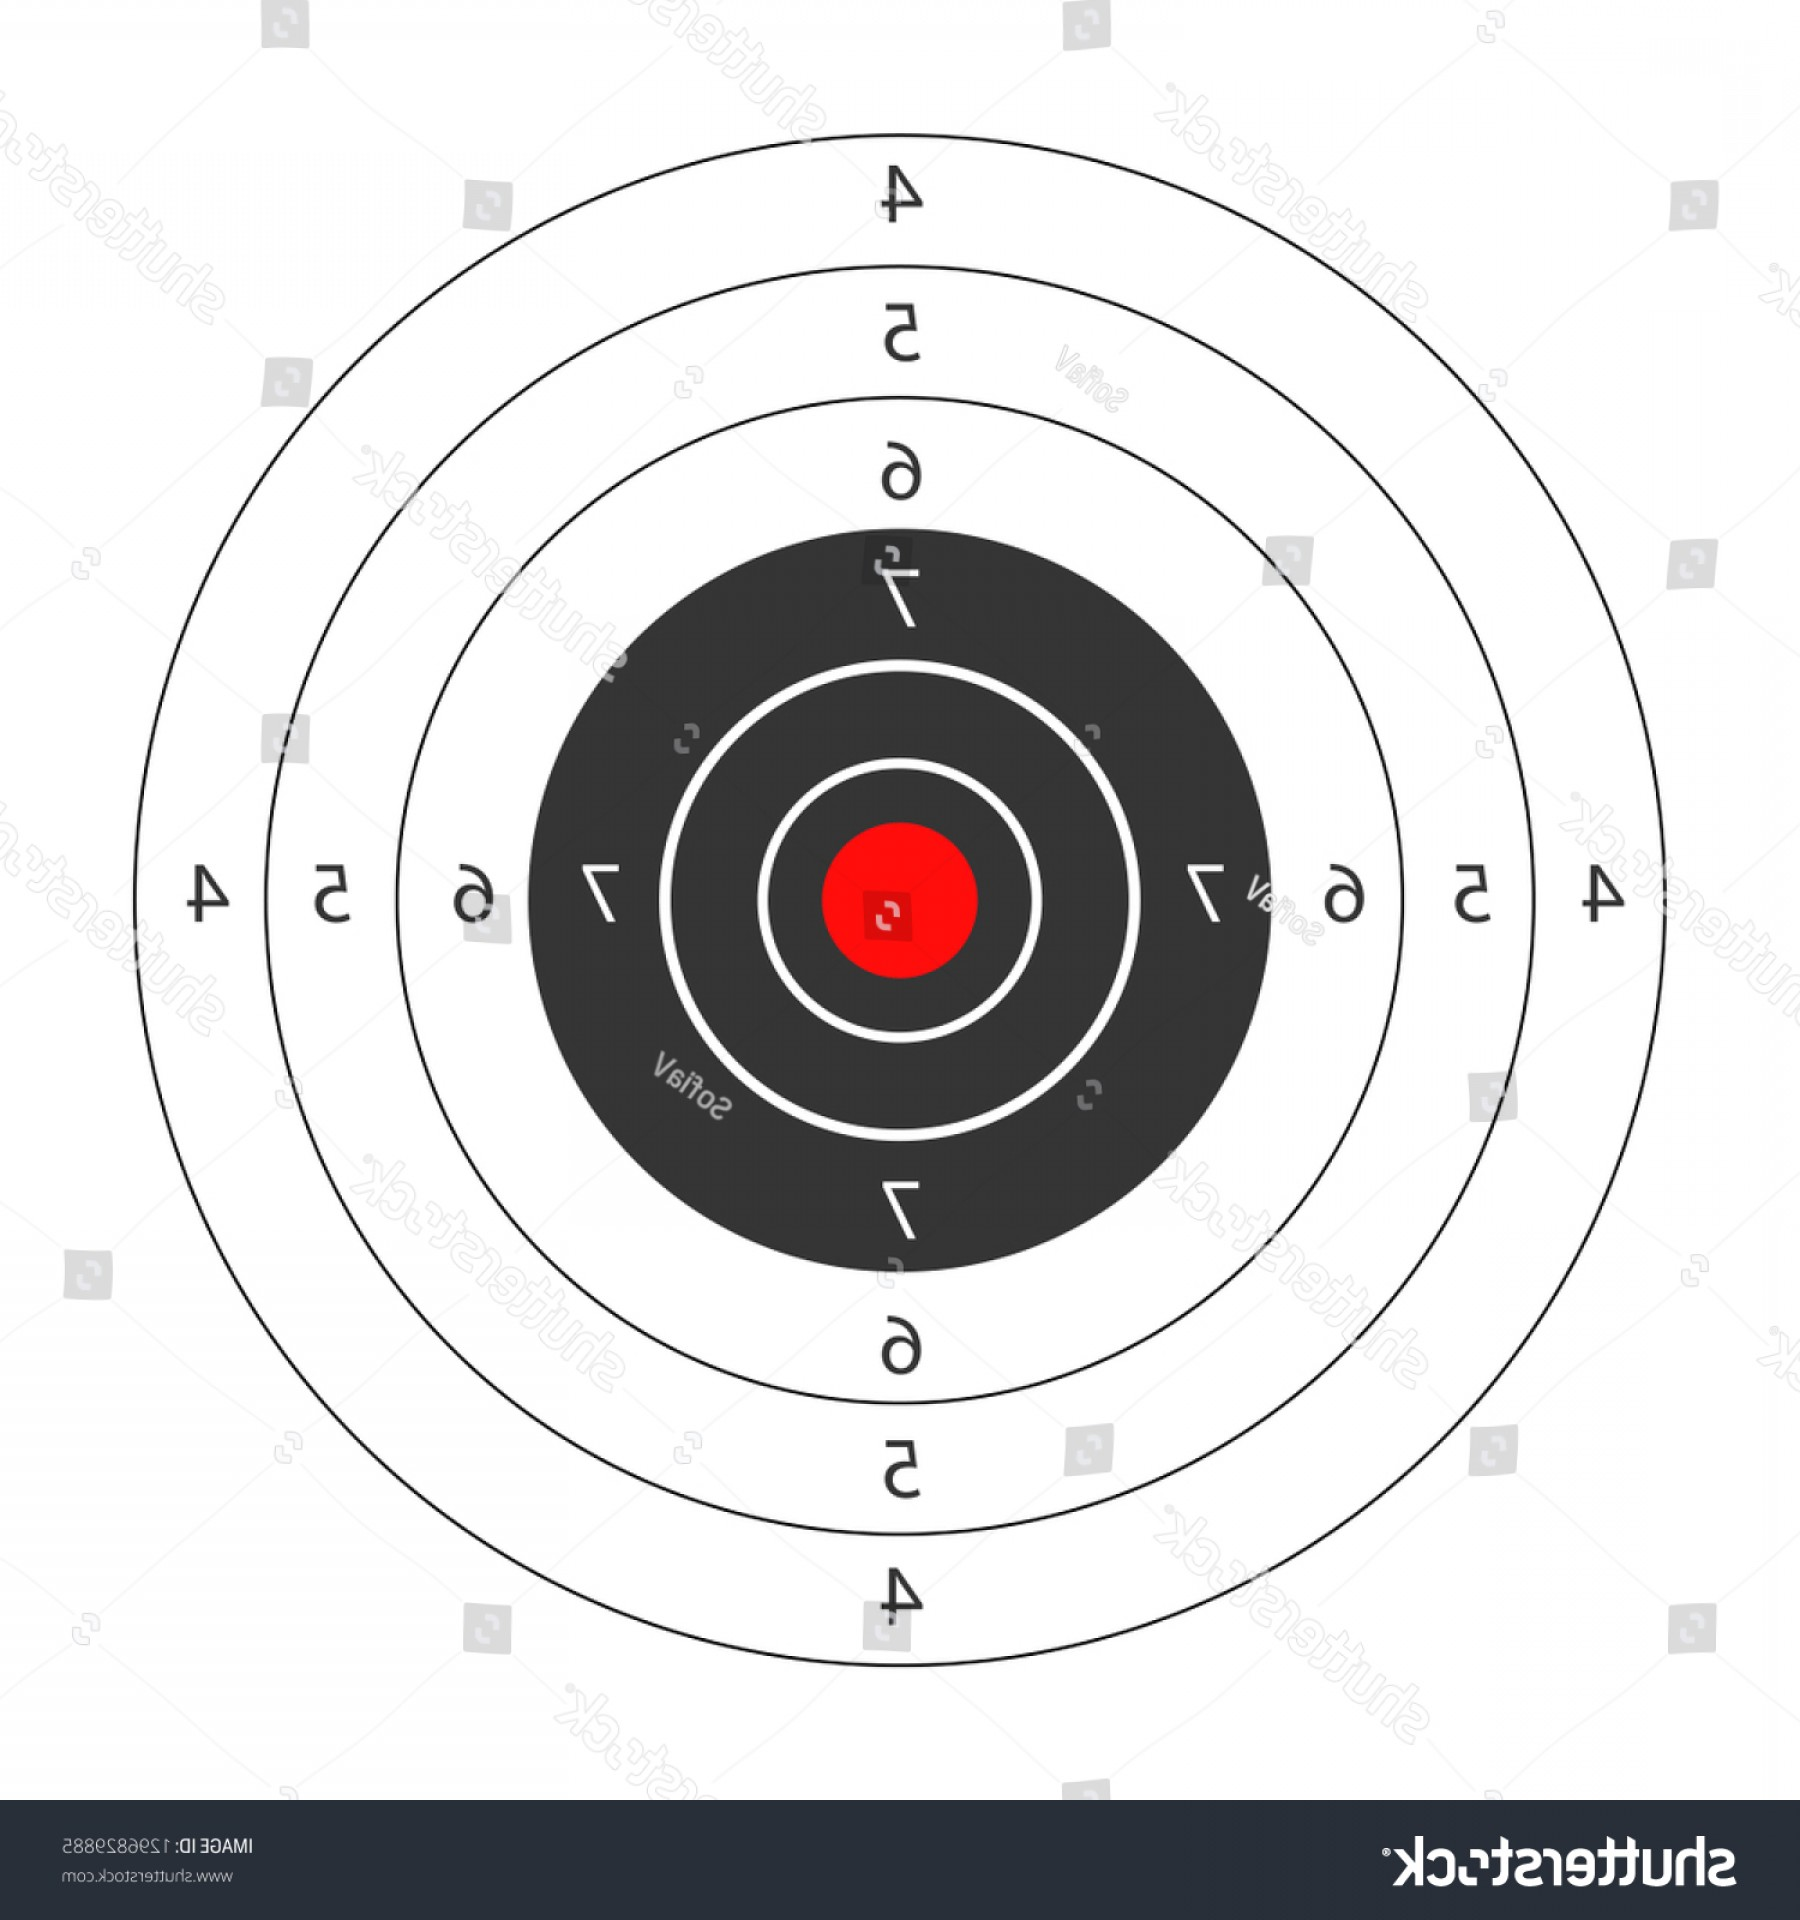 Vector Sport Spot 1 Million: Round Target Red Spot Middle Shooting